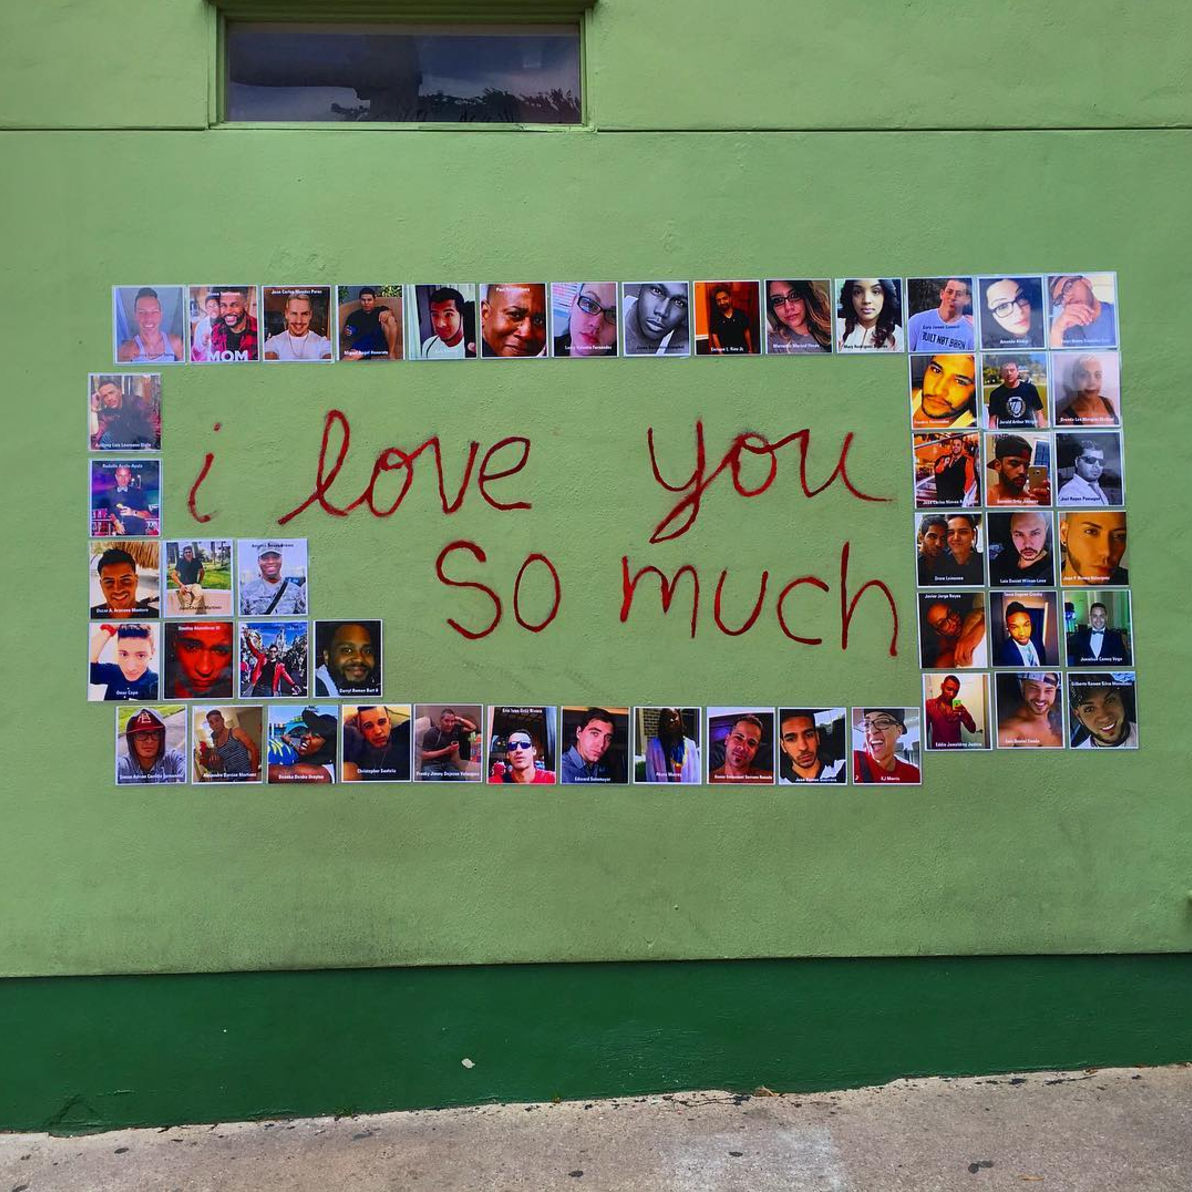 The i love you so much wall was the site of a memorial for the victims of the horrific 2016 shooting at the pulse nightclub in orlando florida